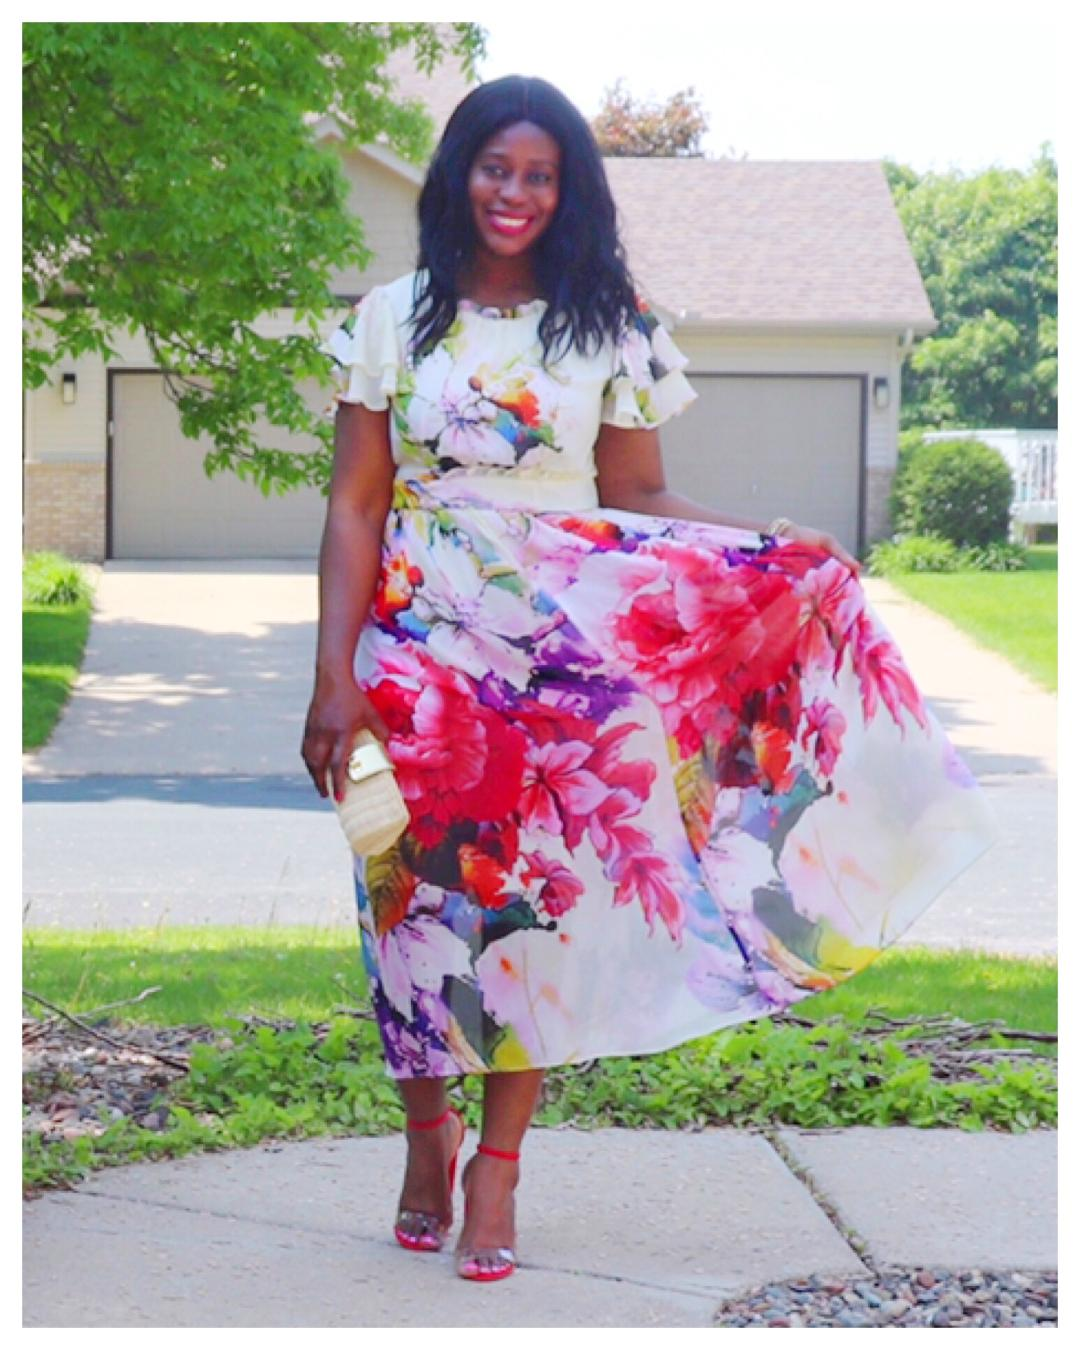 Fashion Beauty Zone: Beauty's Fashion Zone: Splashed In Florals For The Summer